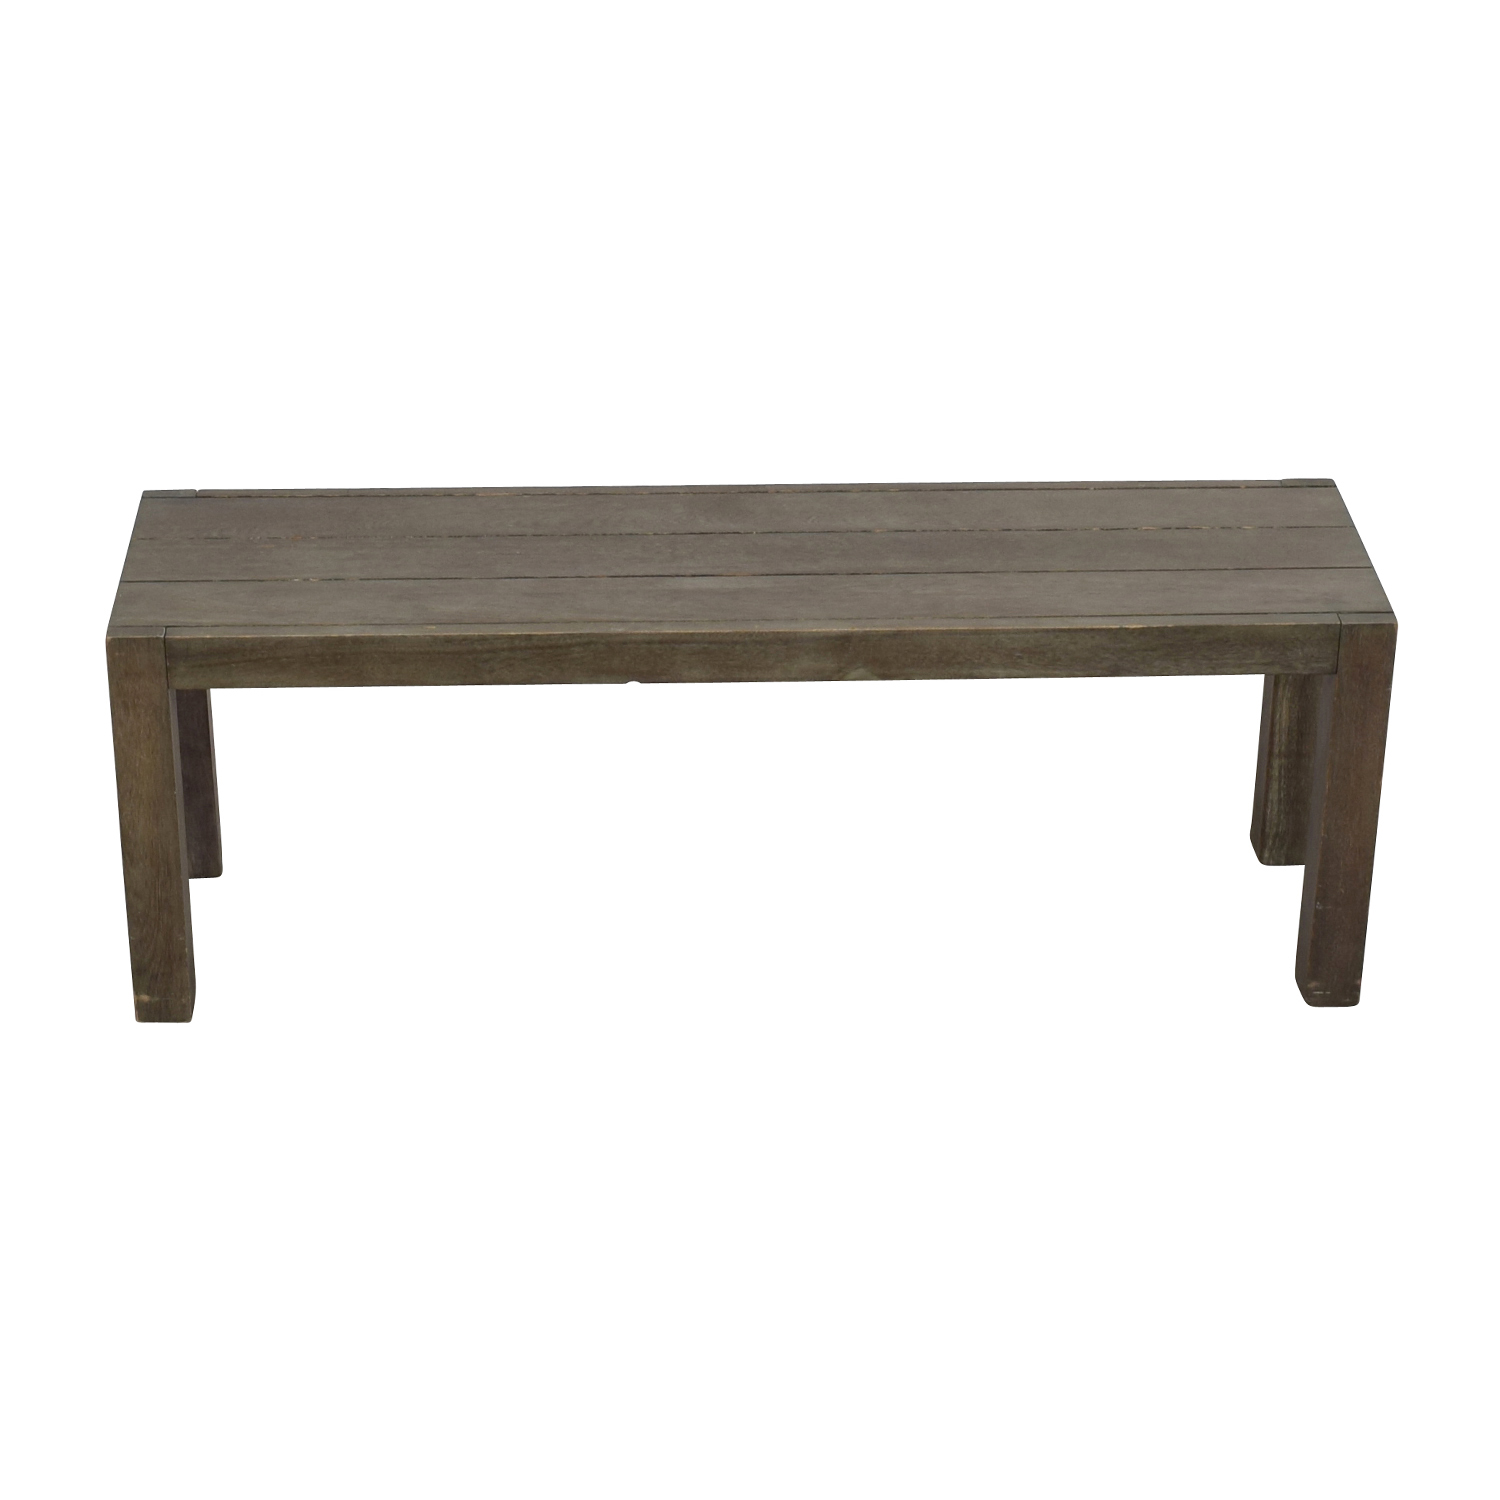 shop CB2 Matera Dining Bench CB2